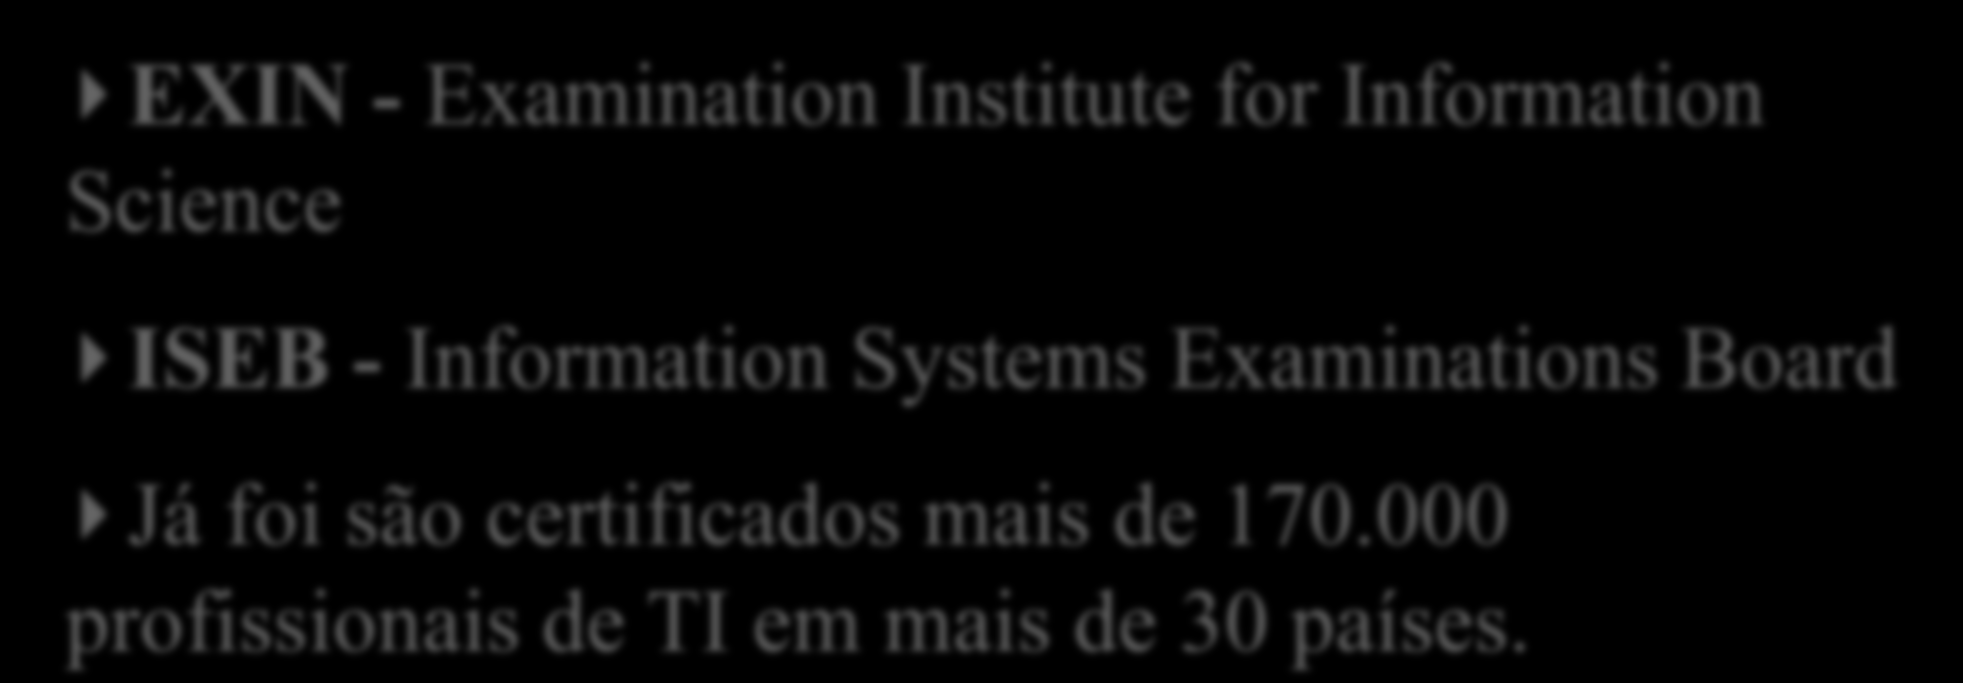 CERTIFICAÇÕES EXIN - Examination Institute for Information Science ISEB - Information Systems